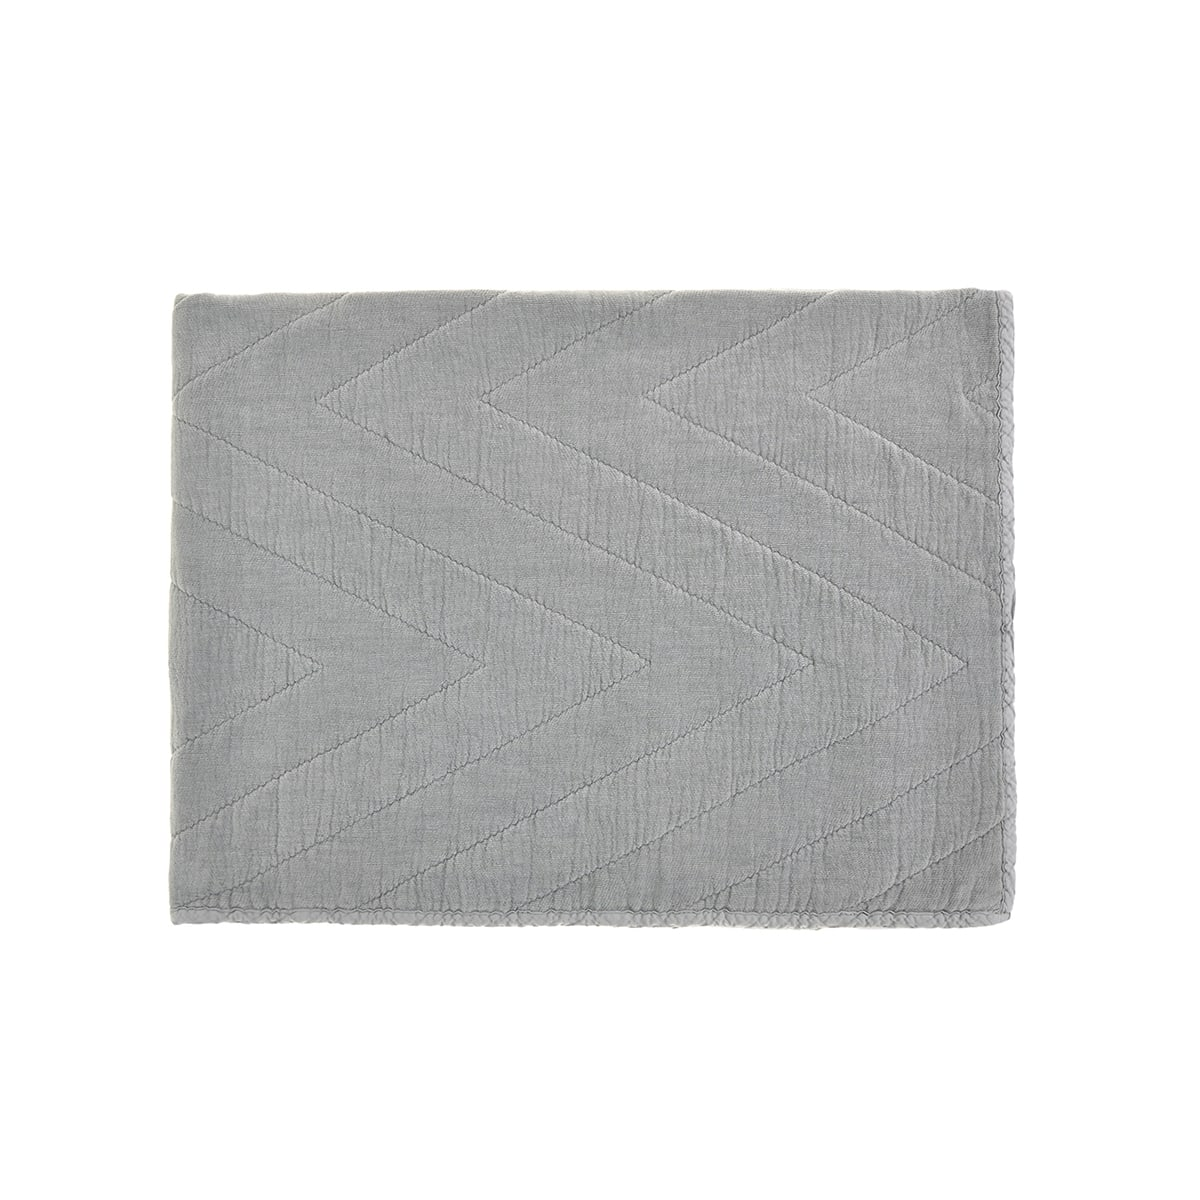 Eugenie quilt Ciment Grey